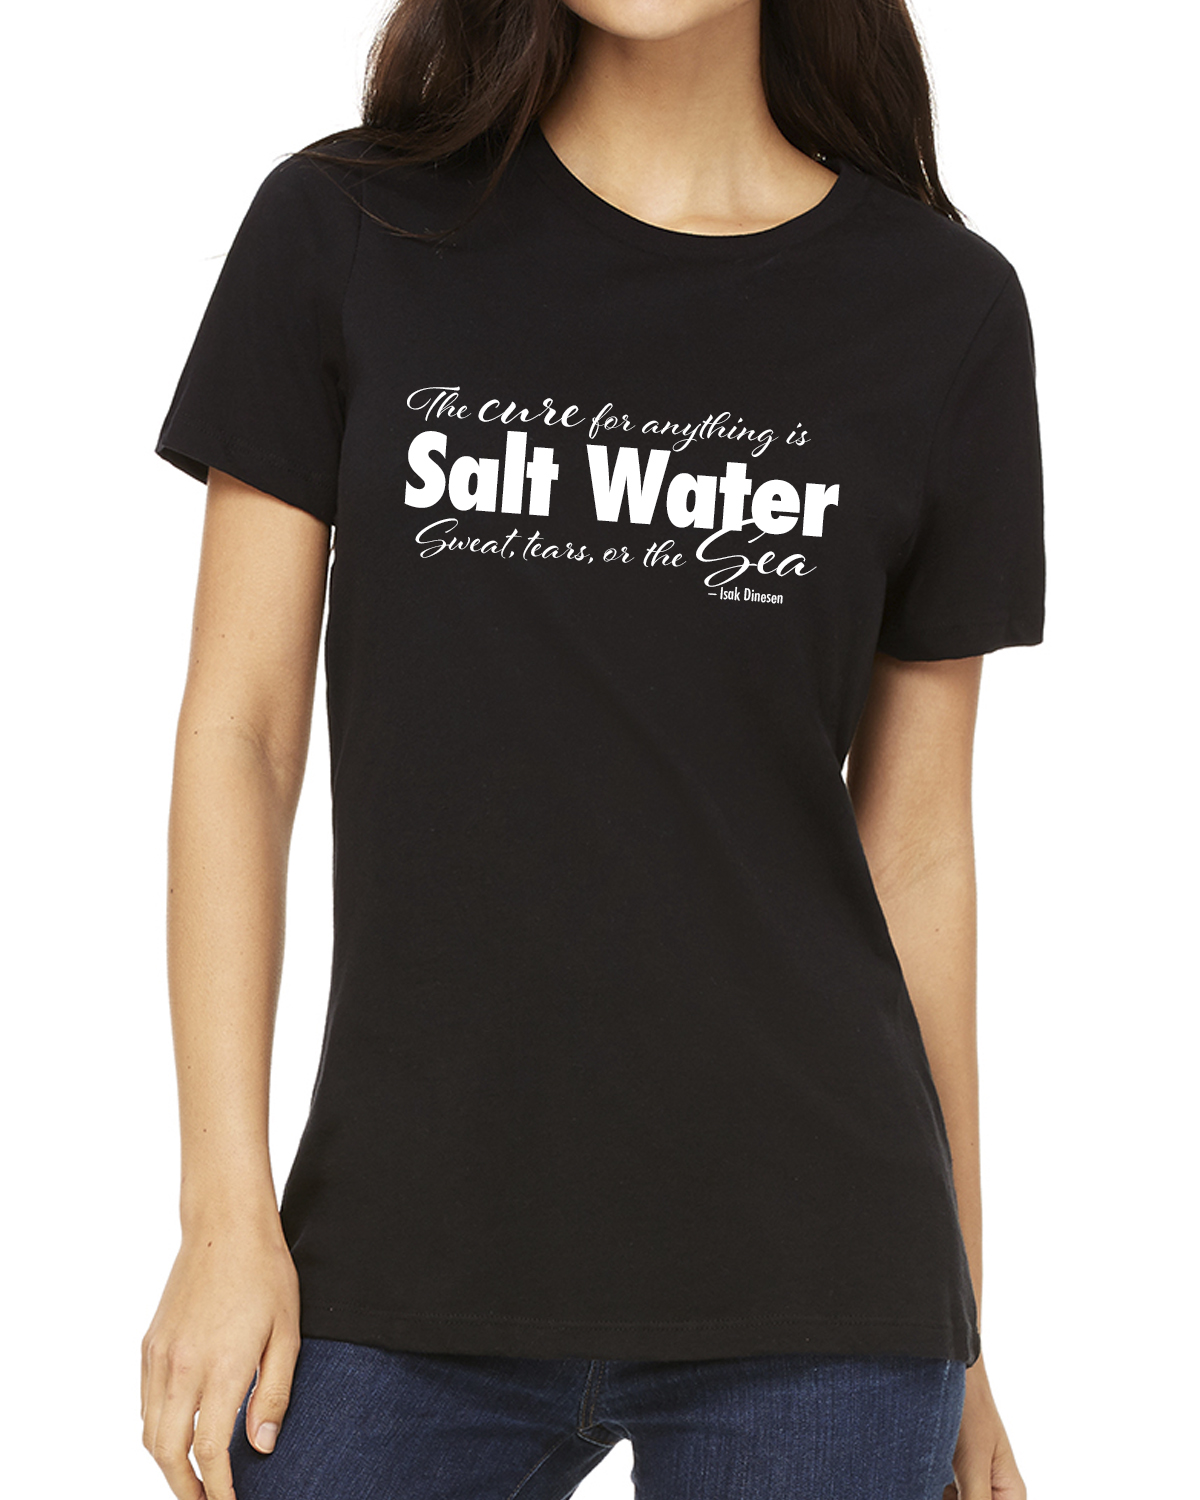 Women's Crew Neck Short Sleeve Salt Water QuoteT-shirt (Black)